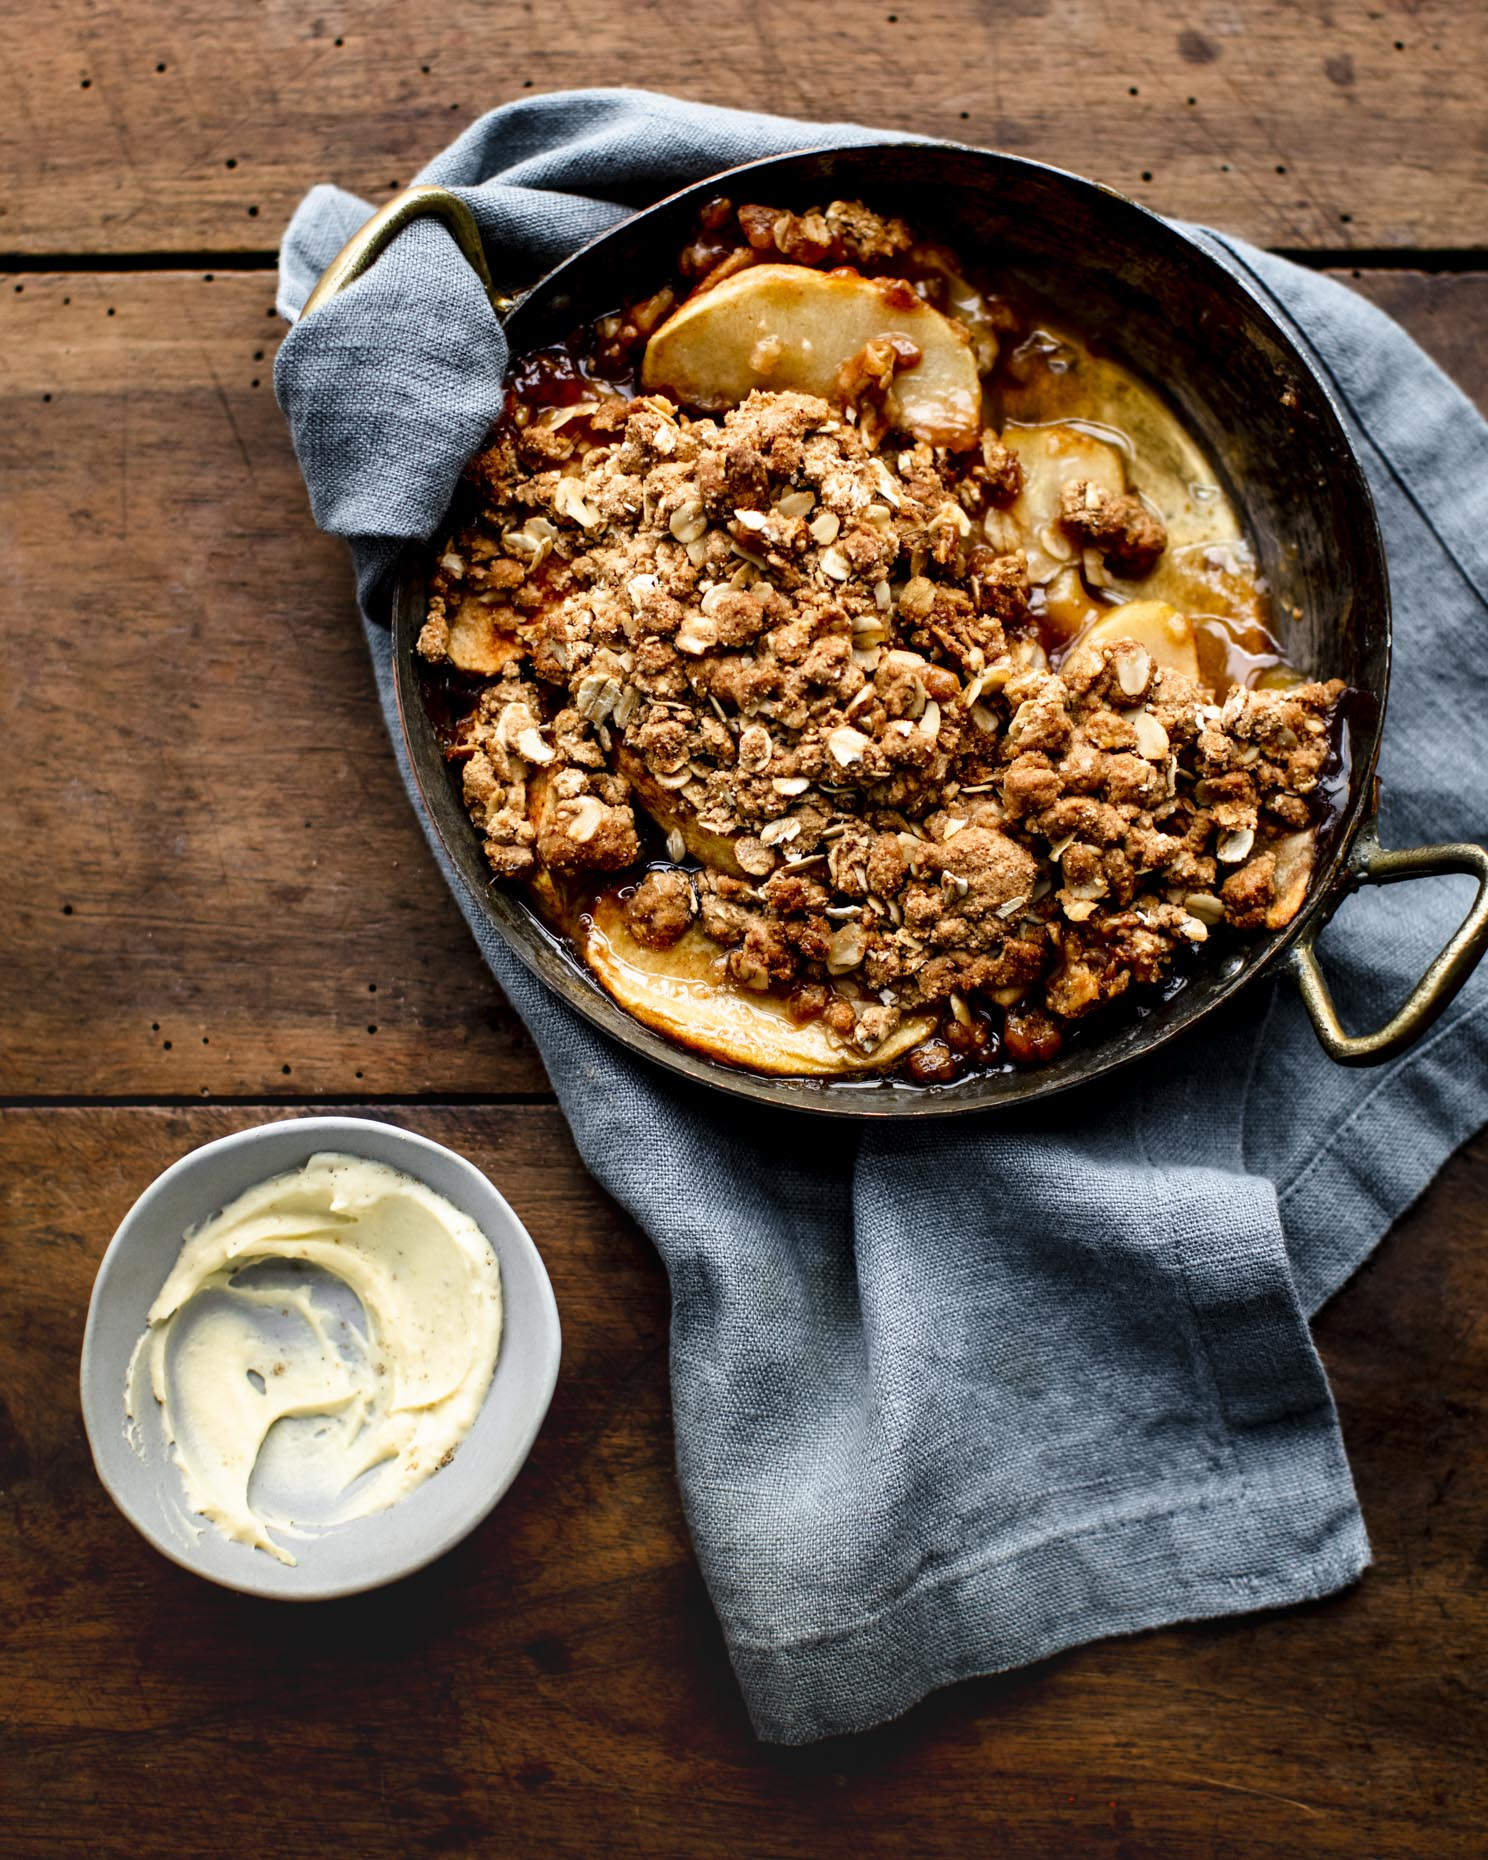 larsen_apple_crisp_with_cardamom_custard_0070